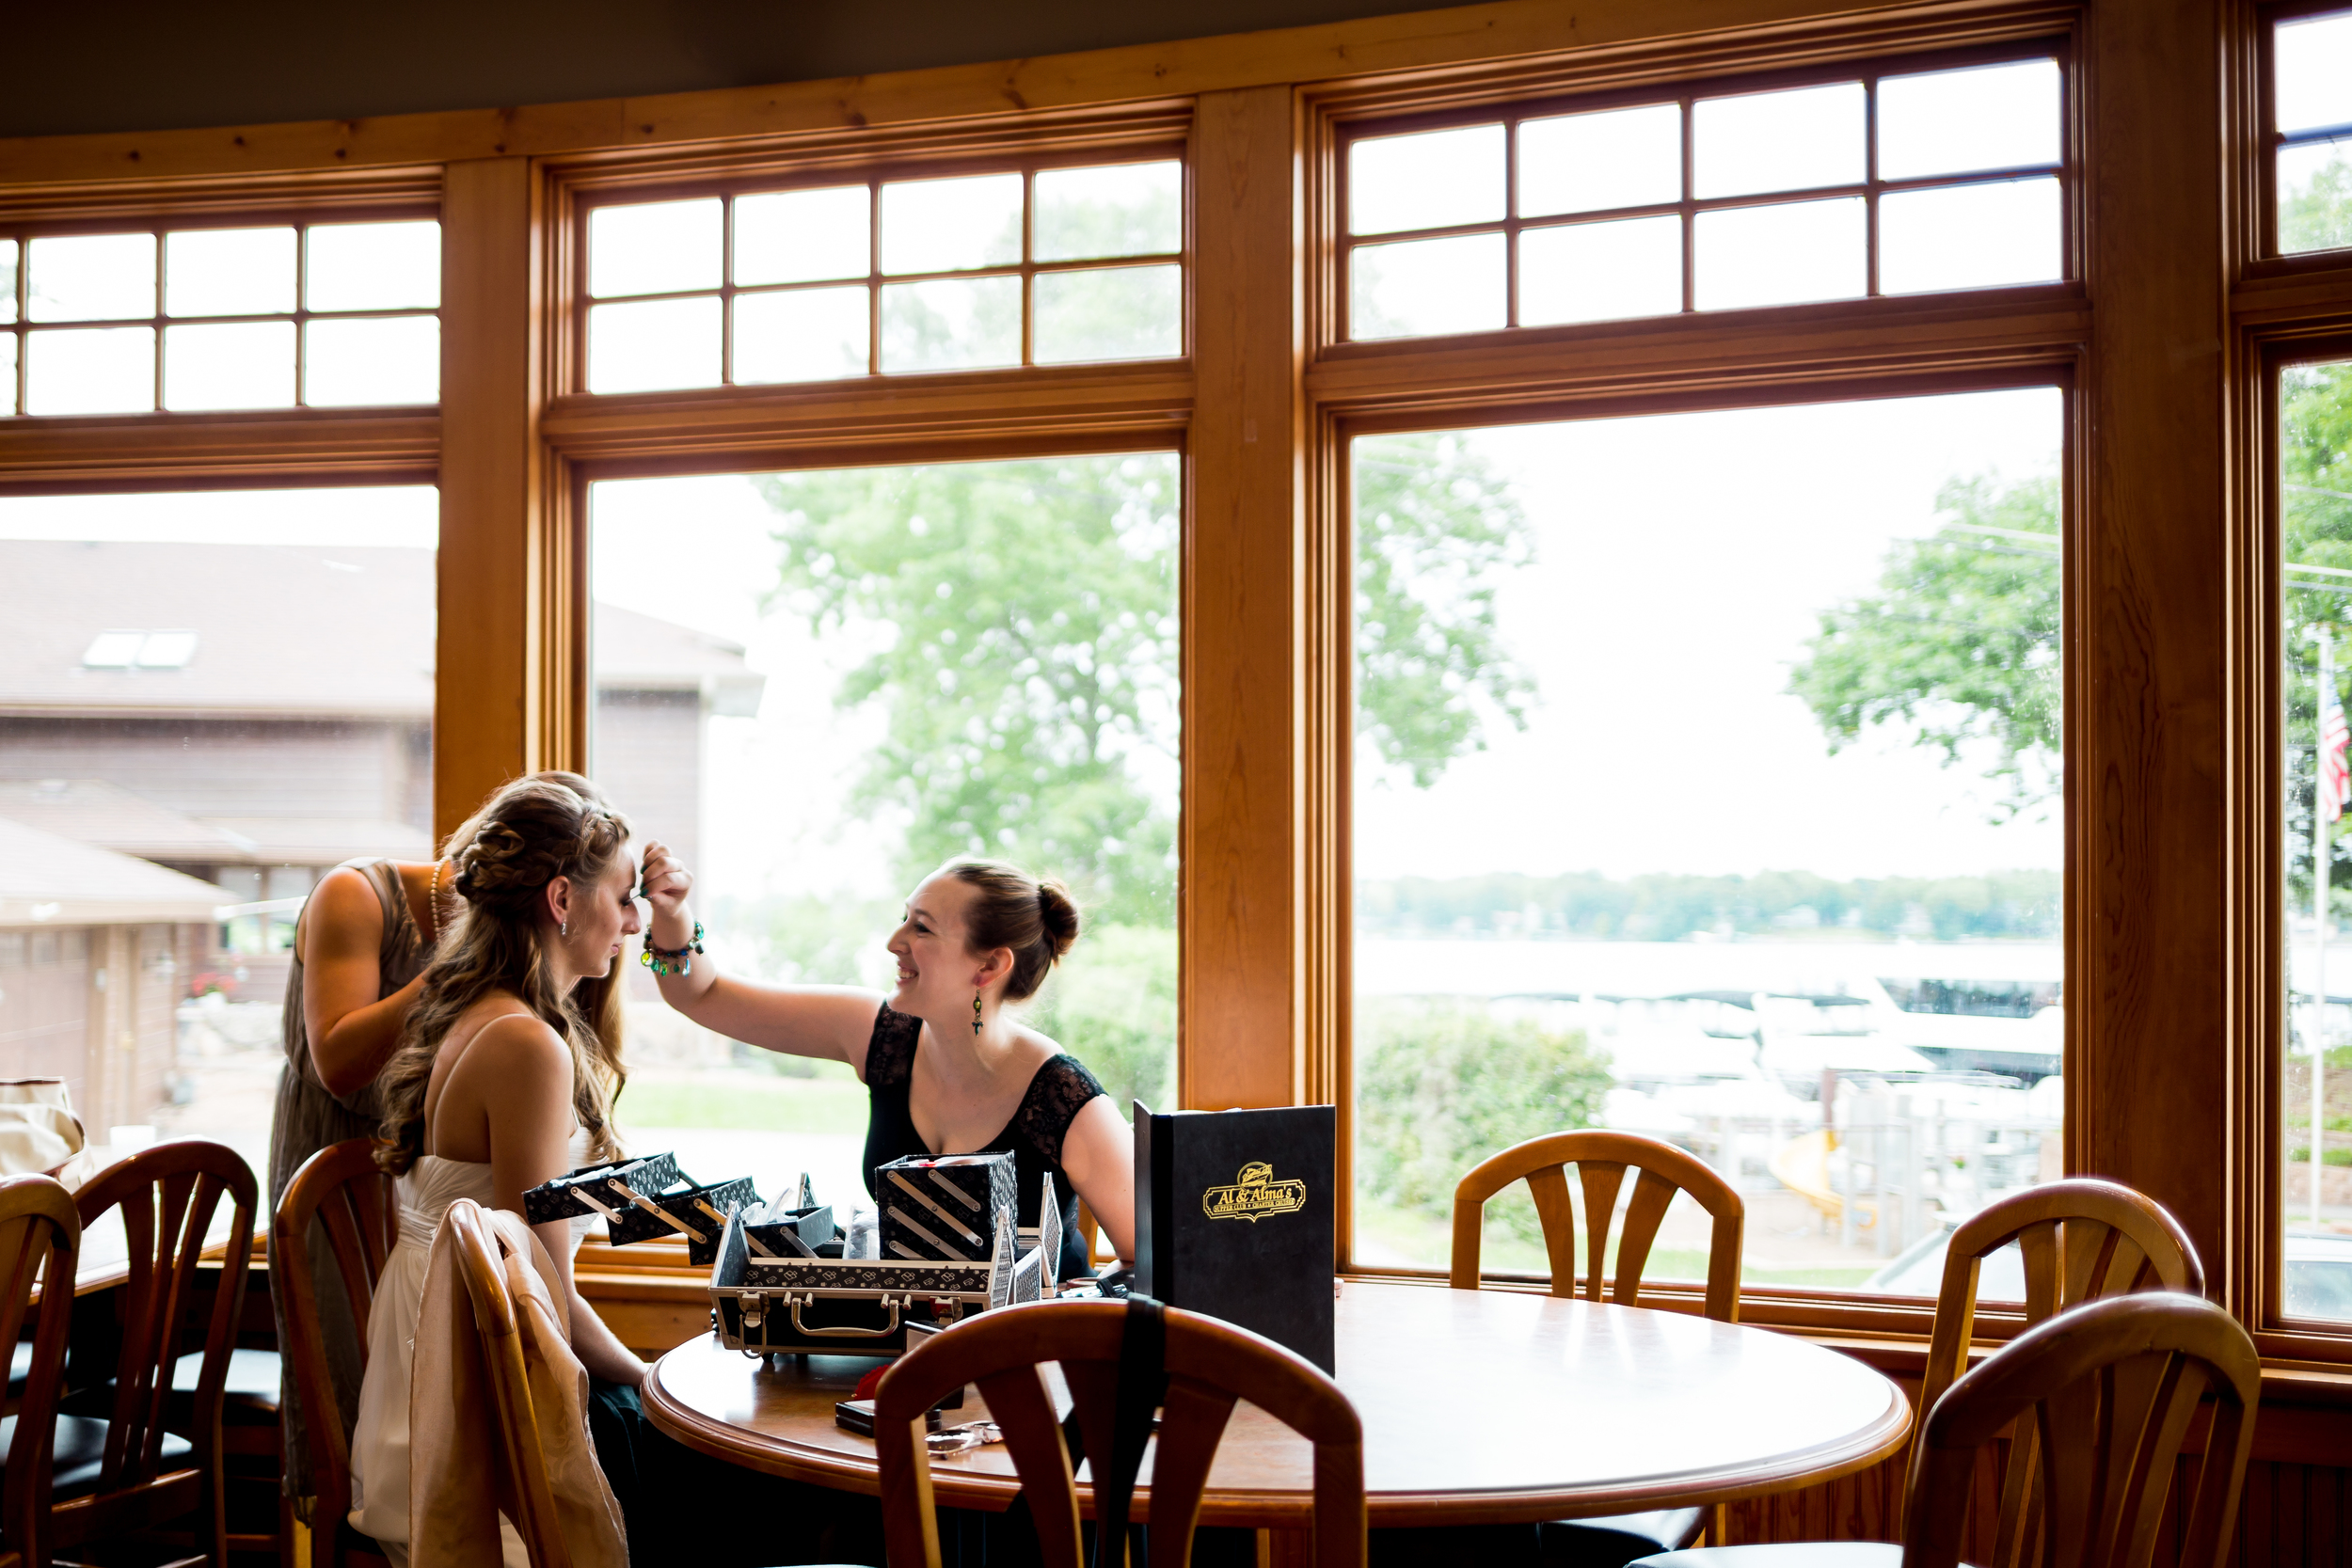 Our bride Robin sits near the window light as her sister Josie does her makeup.